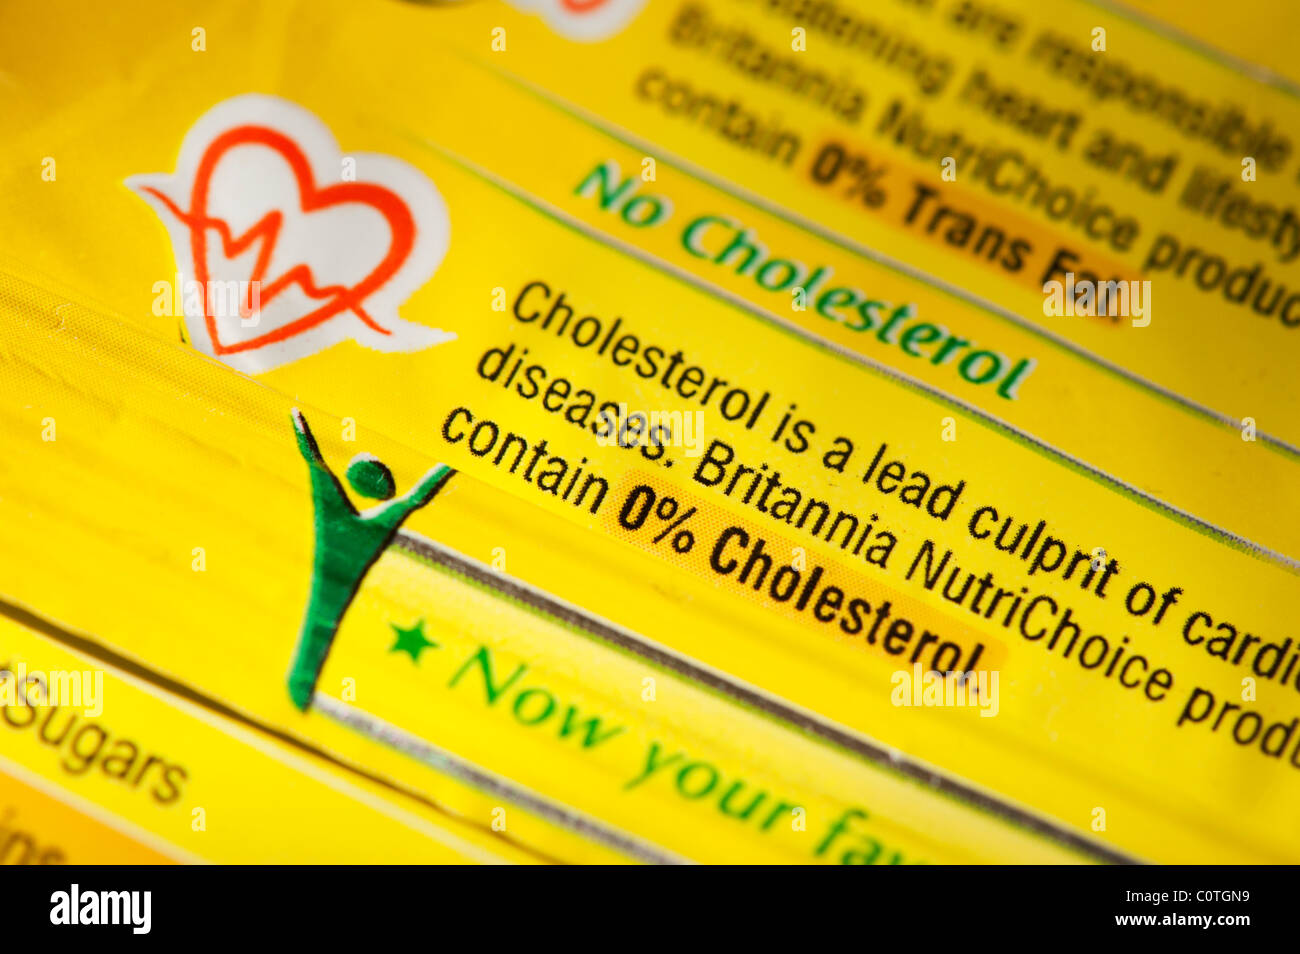 No cholesterol and no trans fats food advice on an indian food packet. India Stock Photo